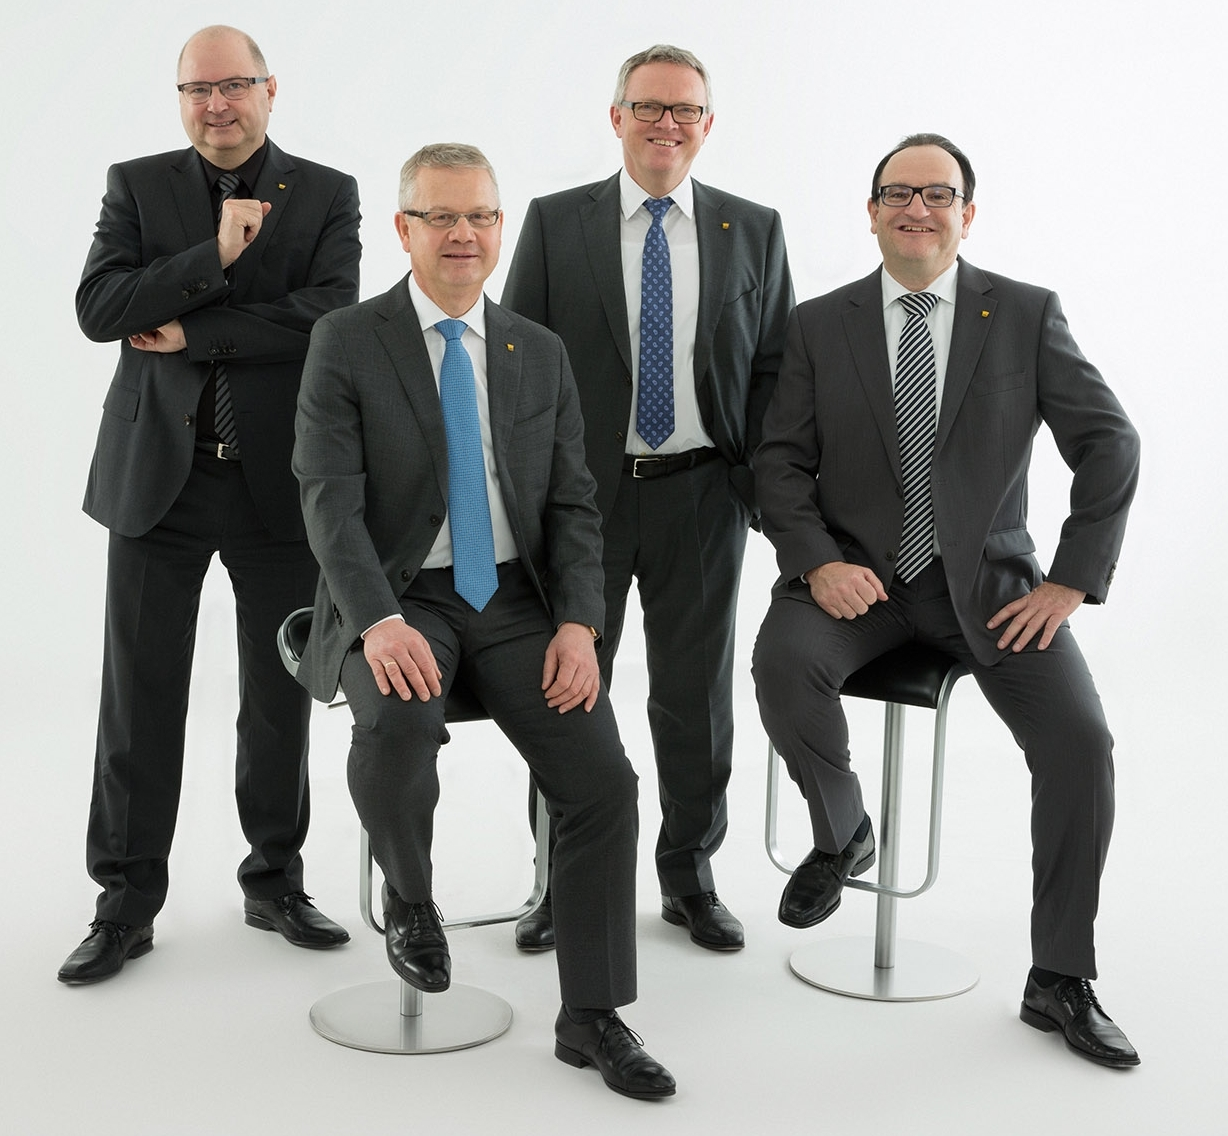 Der neue Vorstand der Sto SE & Co. KGaA (v.l.n.r.): Michael Keller, Markenvertrieb Sto Deutschland, Distribution und Zentrale Dienste; Rainer Hüttenberger, Marketing, Markenvertrieb Sto International und Vorstandssprecher; Gerd Stotmeister, Technik und Rolf Wöhrle, Finanzen. Foto: Sto SE & Co. KGaA